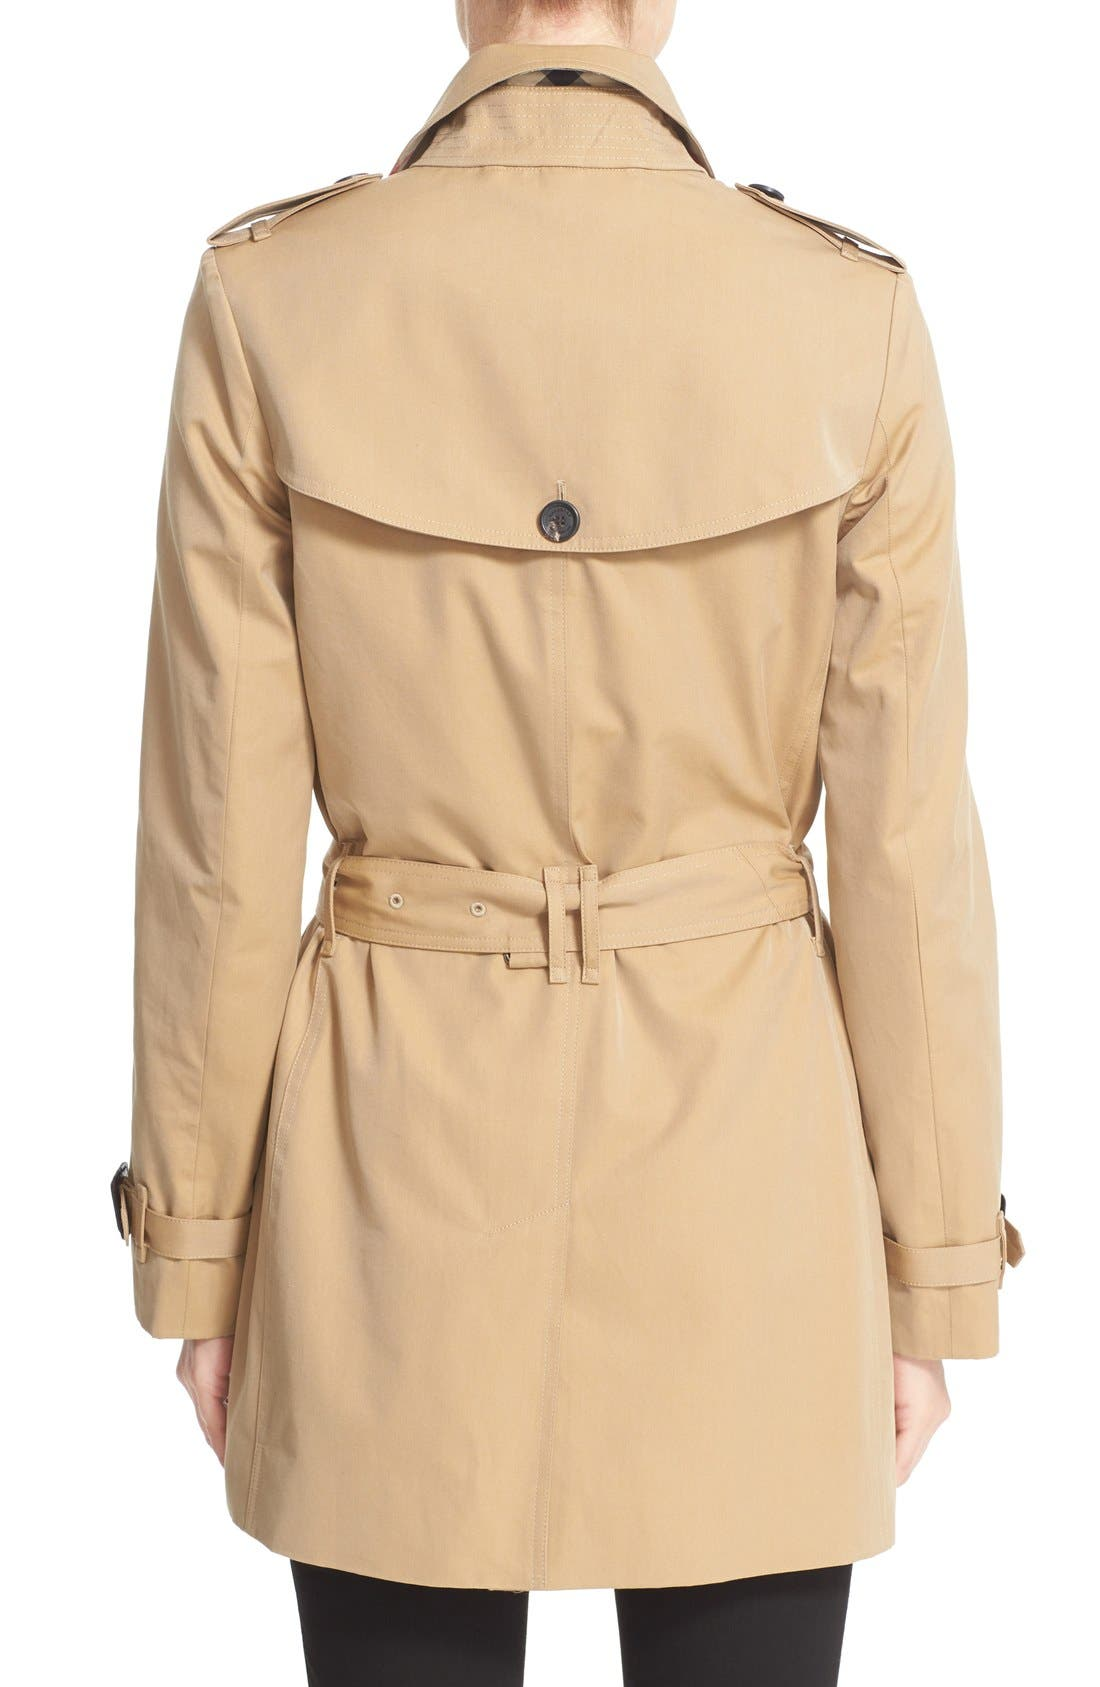 Kensington Short Trench Coat,                             Alternate thumbnail 8, color,                             HONEY